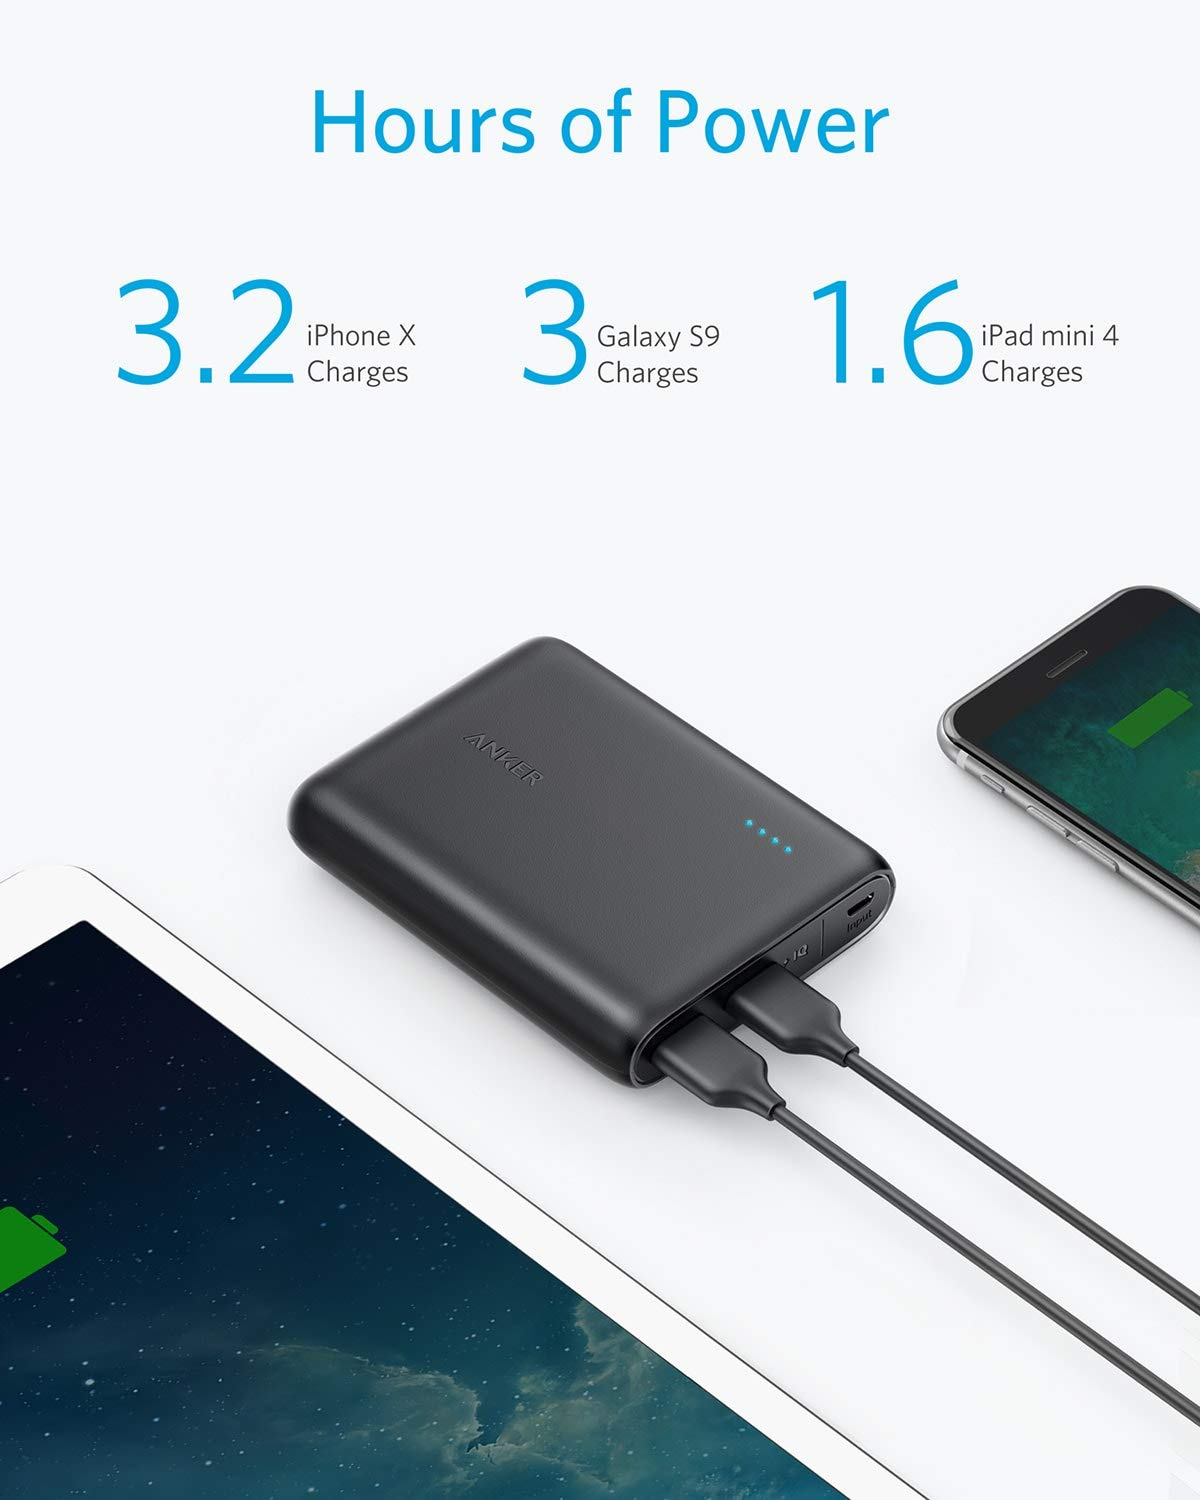 Anker Powercore 13000 Portable Charger Compact 13000mah 2 Port 12v Pocketsized Rechargeable Battery With Protection Circuit 2800ma Phone Power Bank Poweriq And Voltageboost Technology For Iphone Ipad Samsung Galaxy Black Cell Phones Accessories